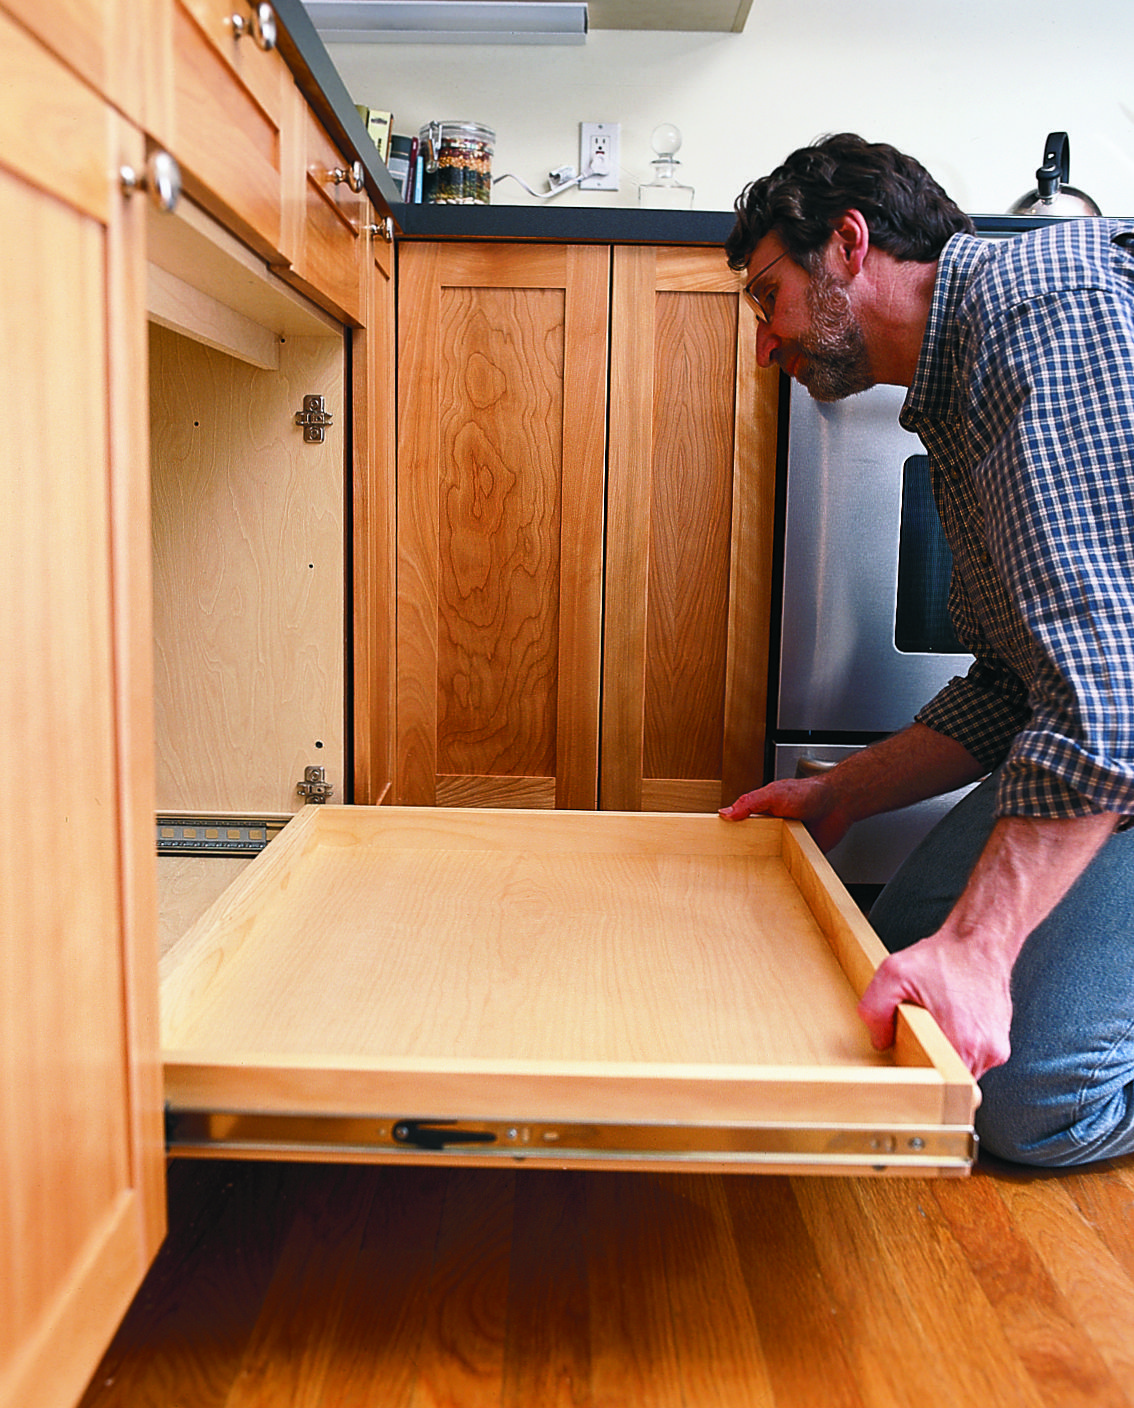 Astounding How To Install A Pull Out Kitchen Shelf Kitchen Cabinet Home Interior And Landscaping Thycampuscom